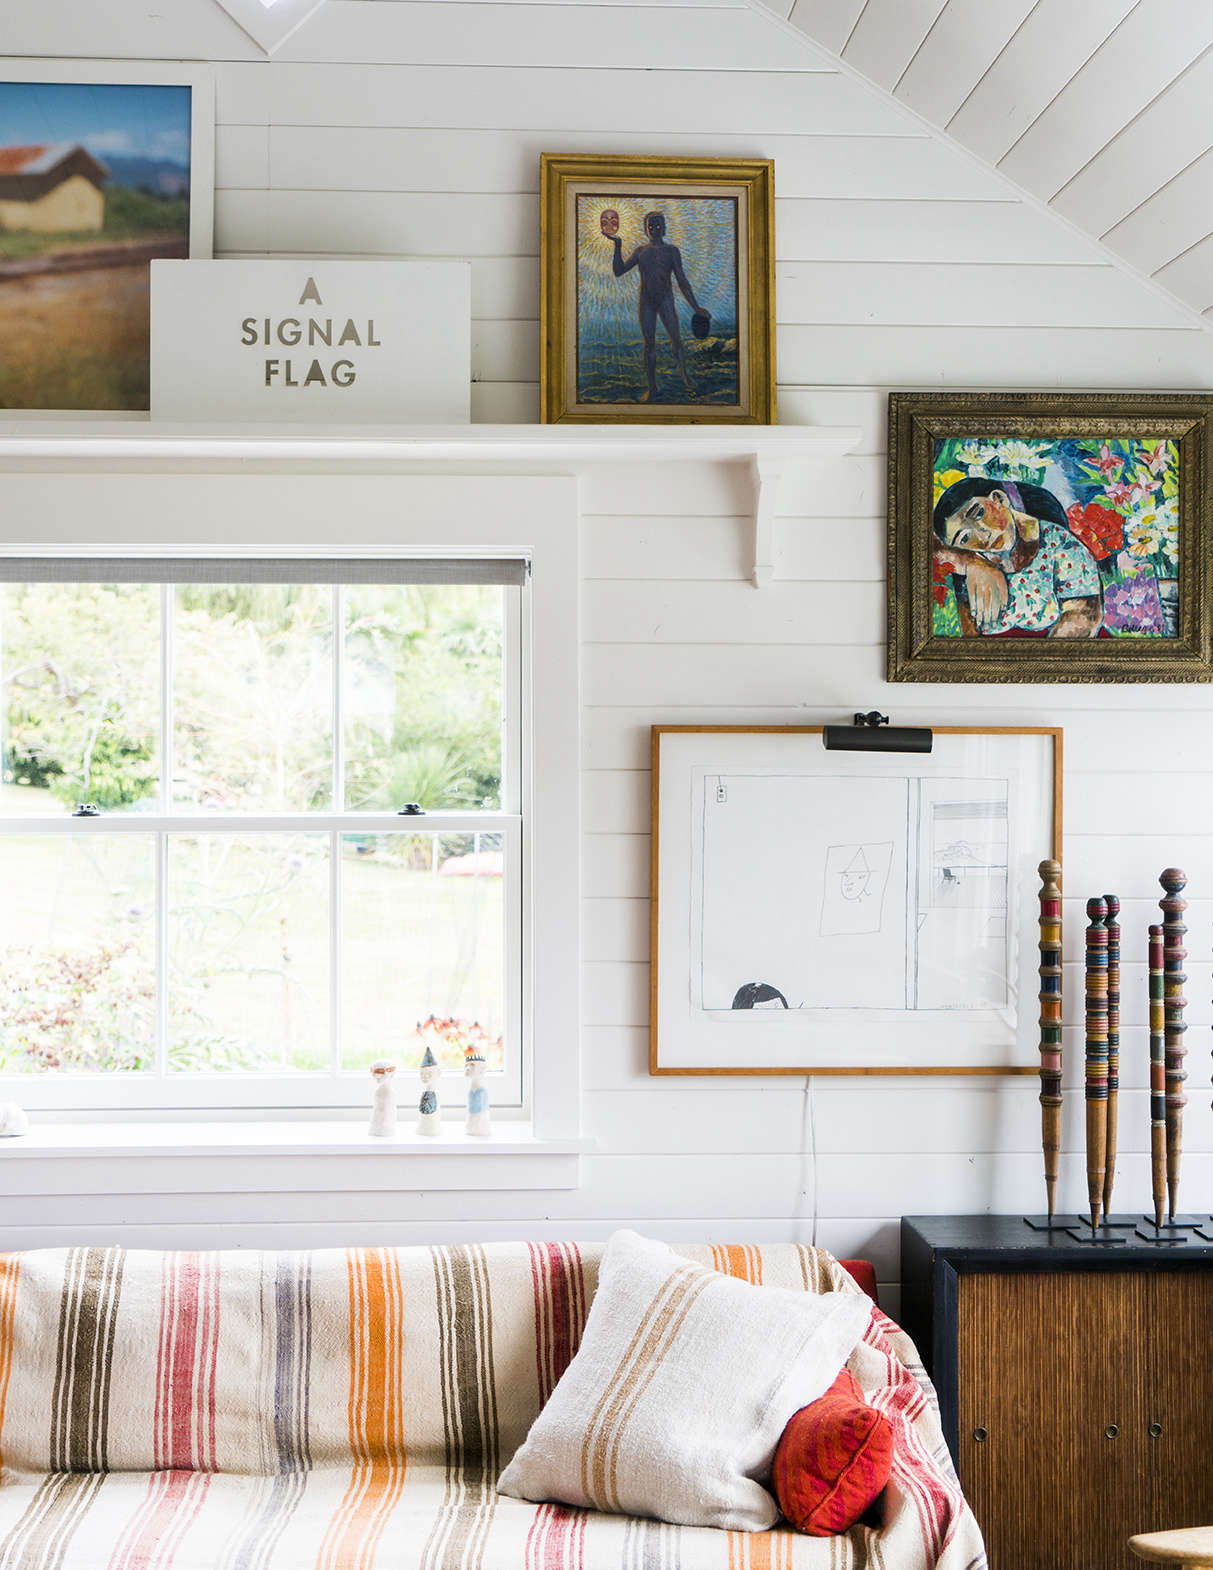 The cedar-paneled walls in every room were painted a soft white for cohesiveness.